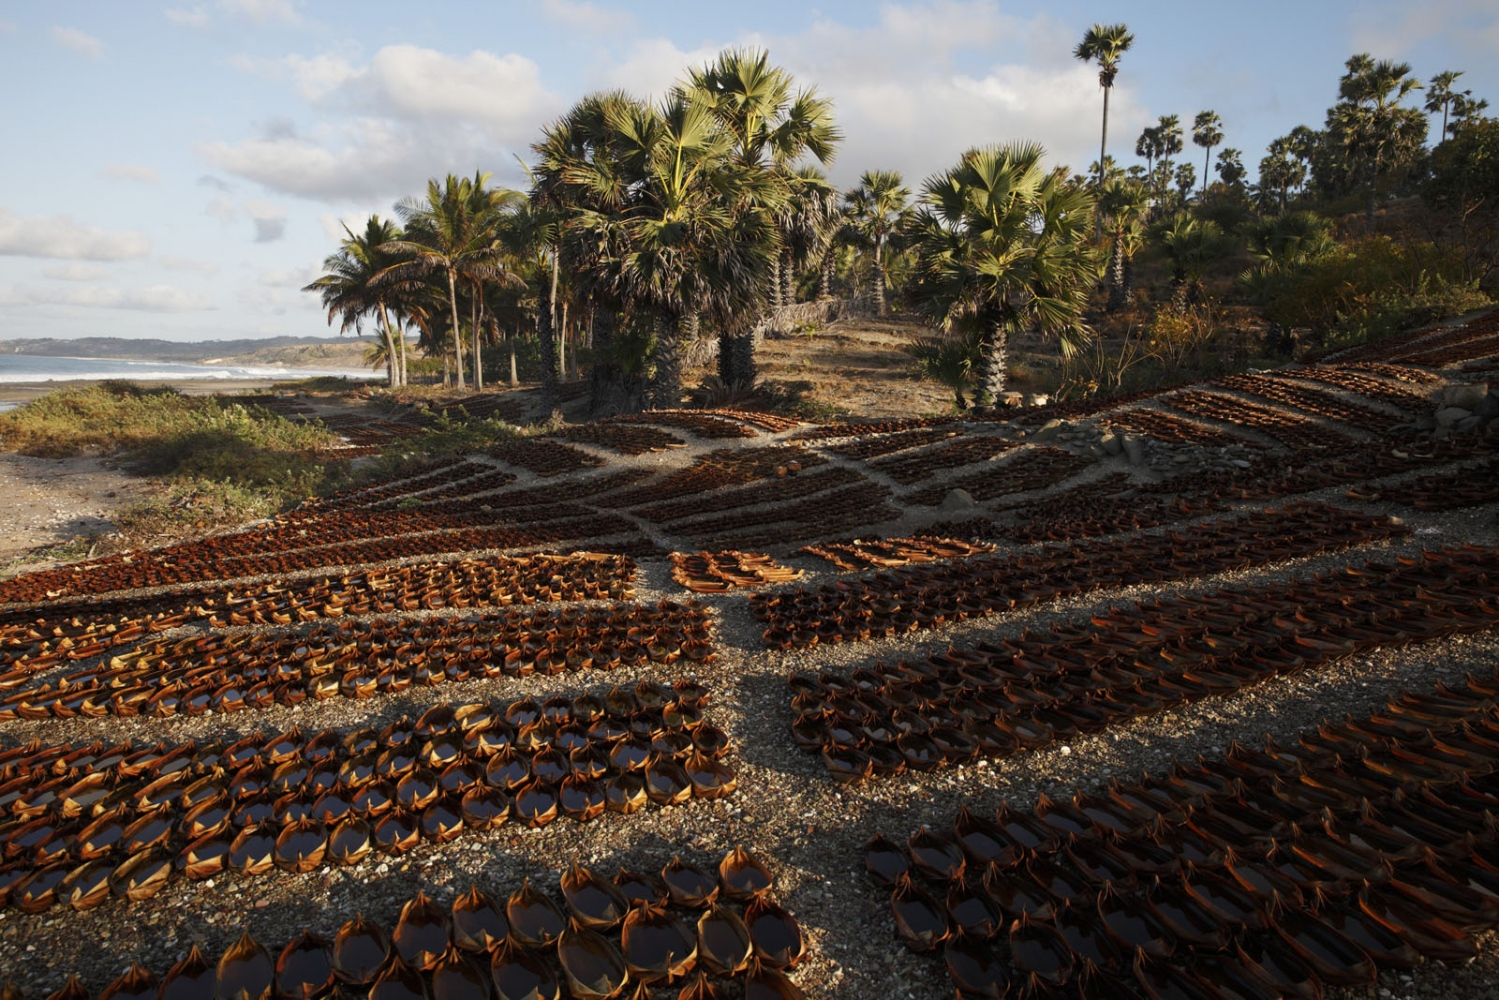 Thousands of tiny salt making 'containers' made of the leaf of the sugar palm tree cover the beach in Eastern Indonesia.